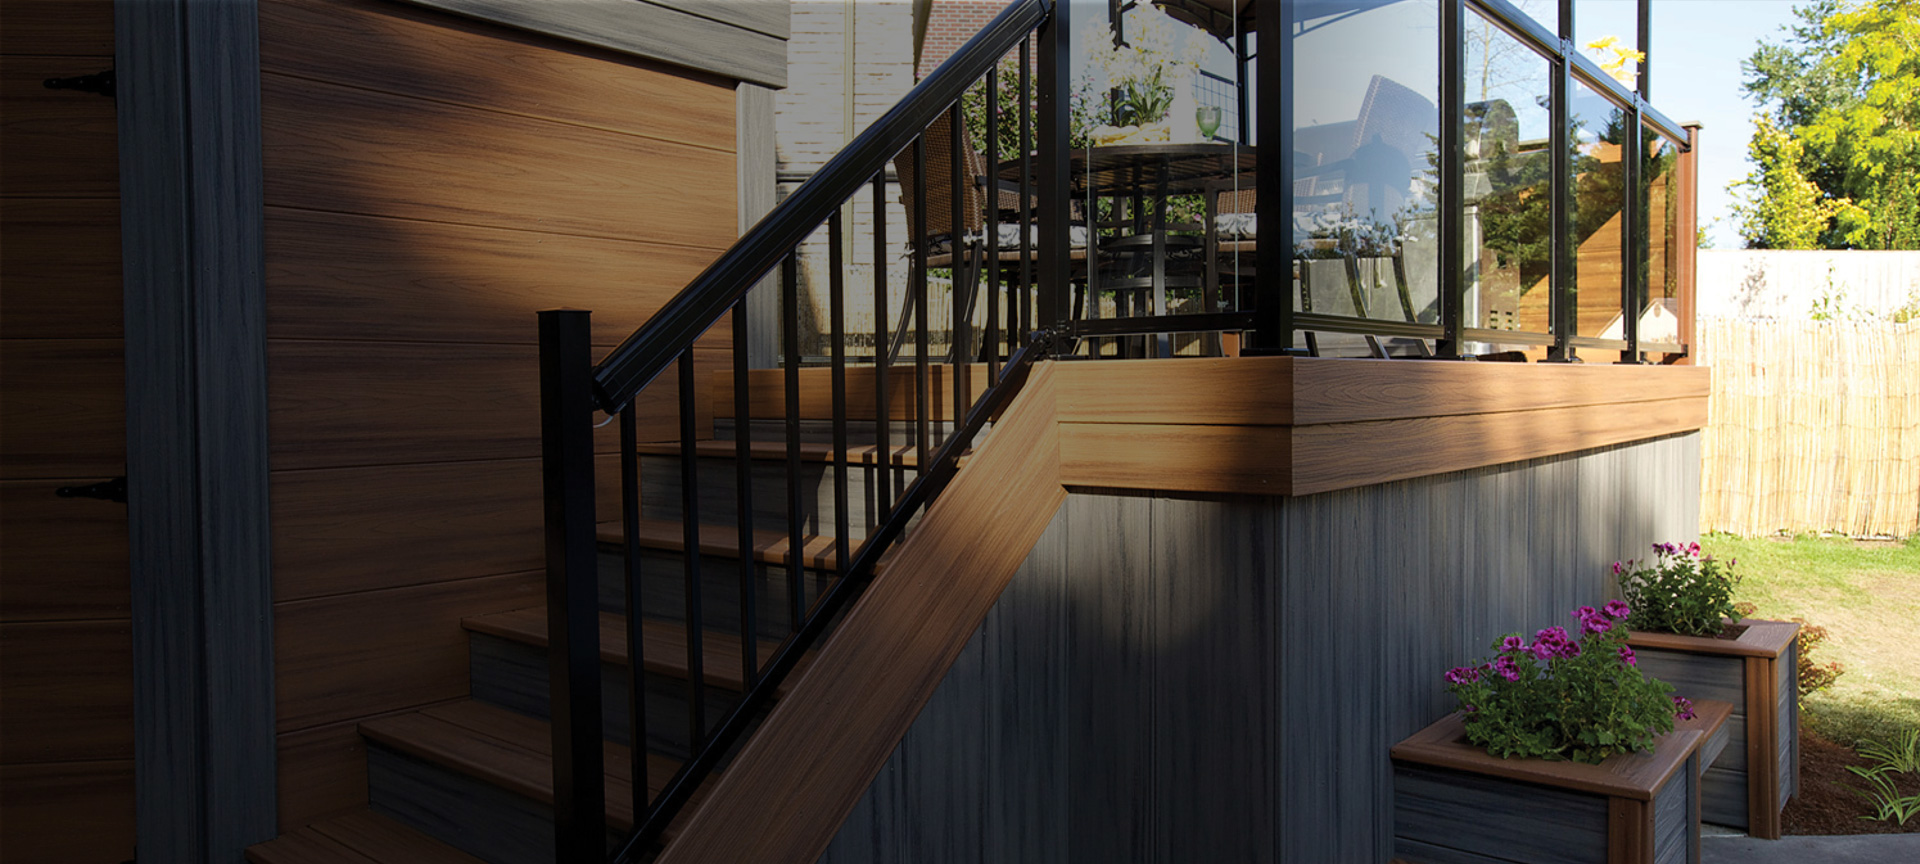 Regal ideas - The Leader in Aluminum Railing Systems